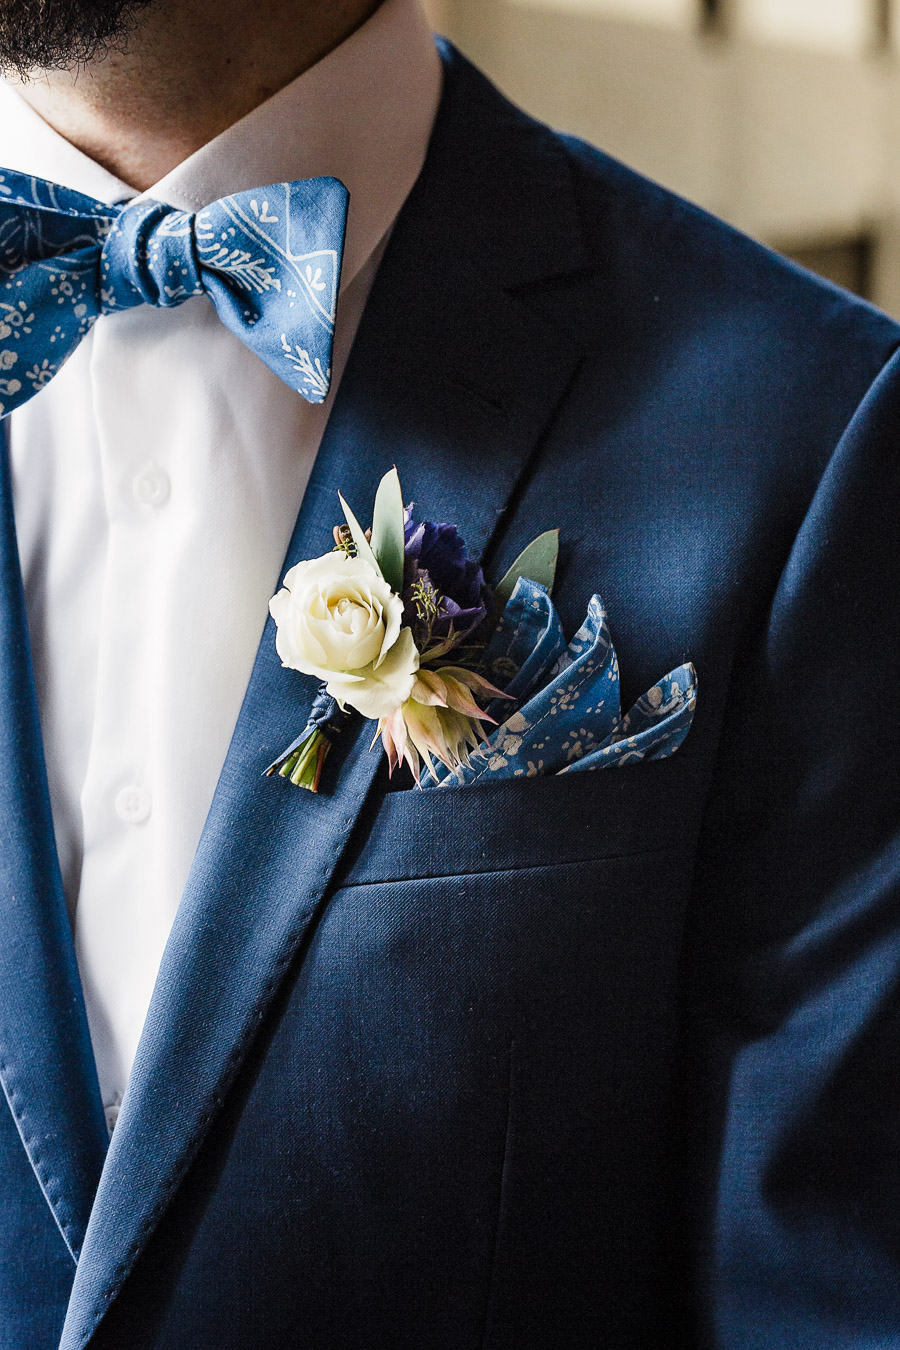 Cyanotype Inspired Wedding Ideas in Chicago - photo by Amber Renee Design http://ruffledblog.com/cyanotype-inspired-wedding-ideas-in-chicago